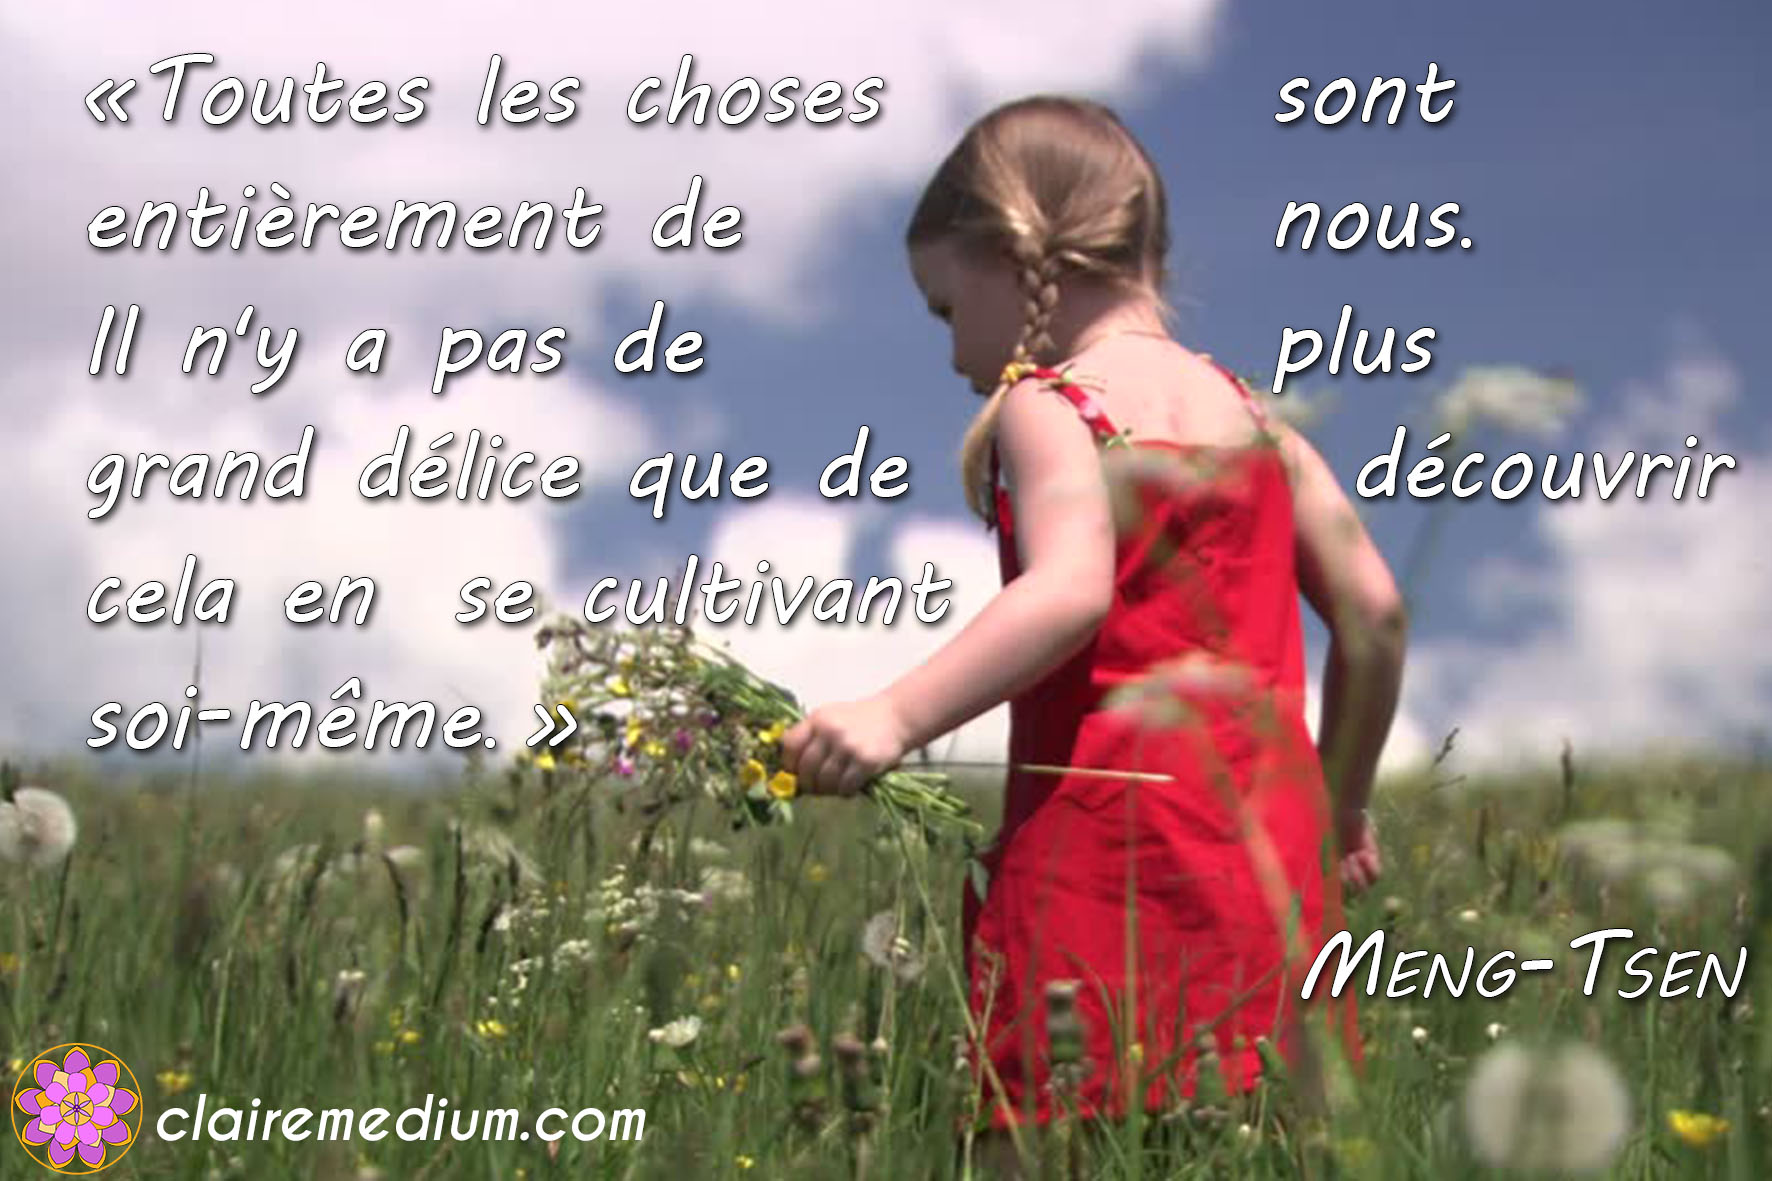 Citation de la semaine : Meng-Tsen